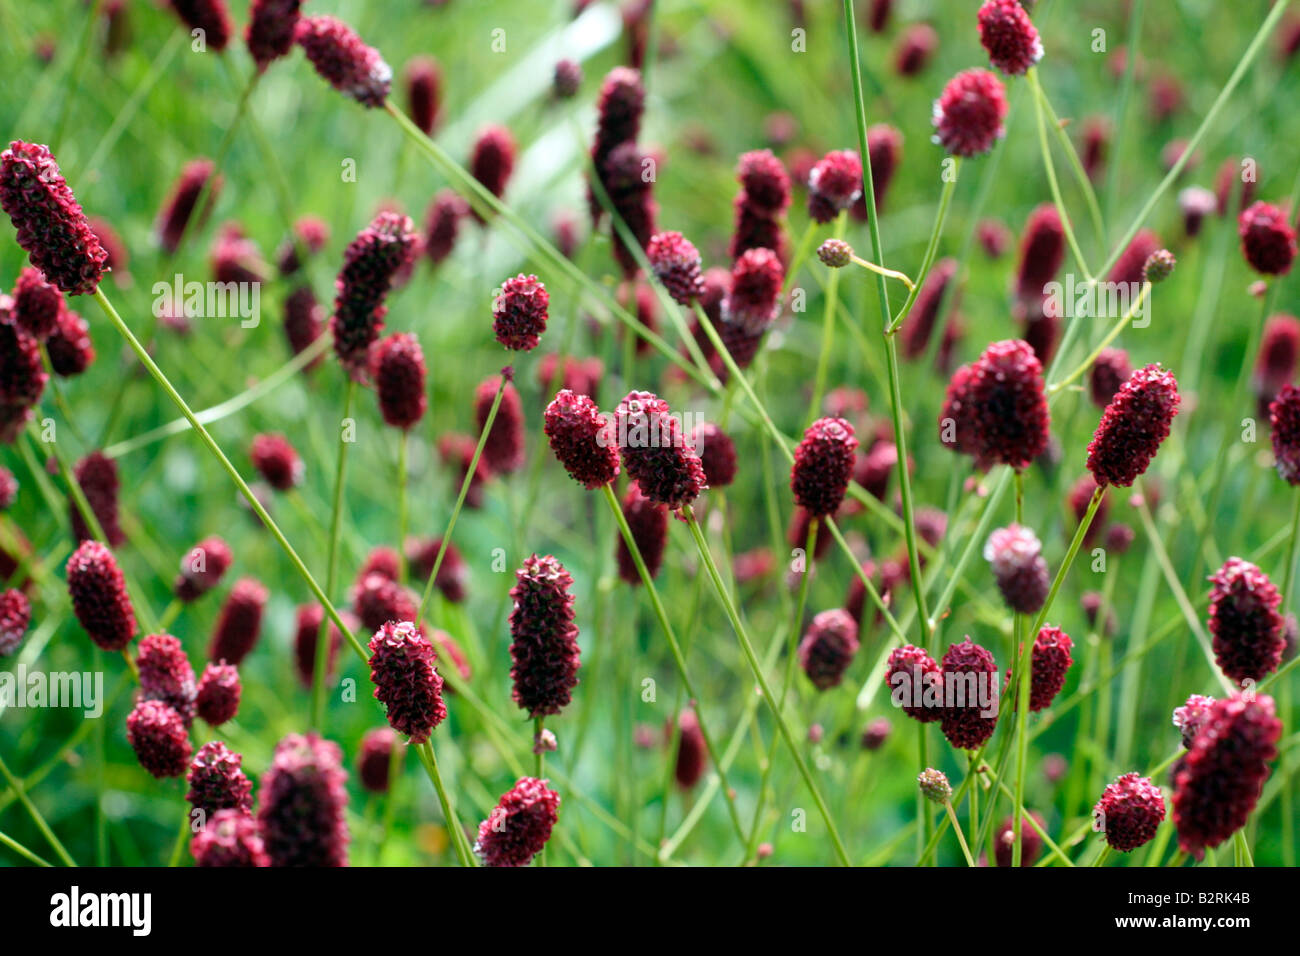 Sanguisorba officinalis red thunder stock photo royalty for Sanguisorba officinalis red thunder